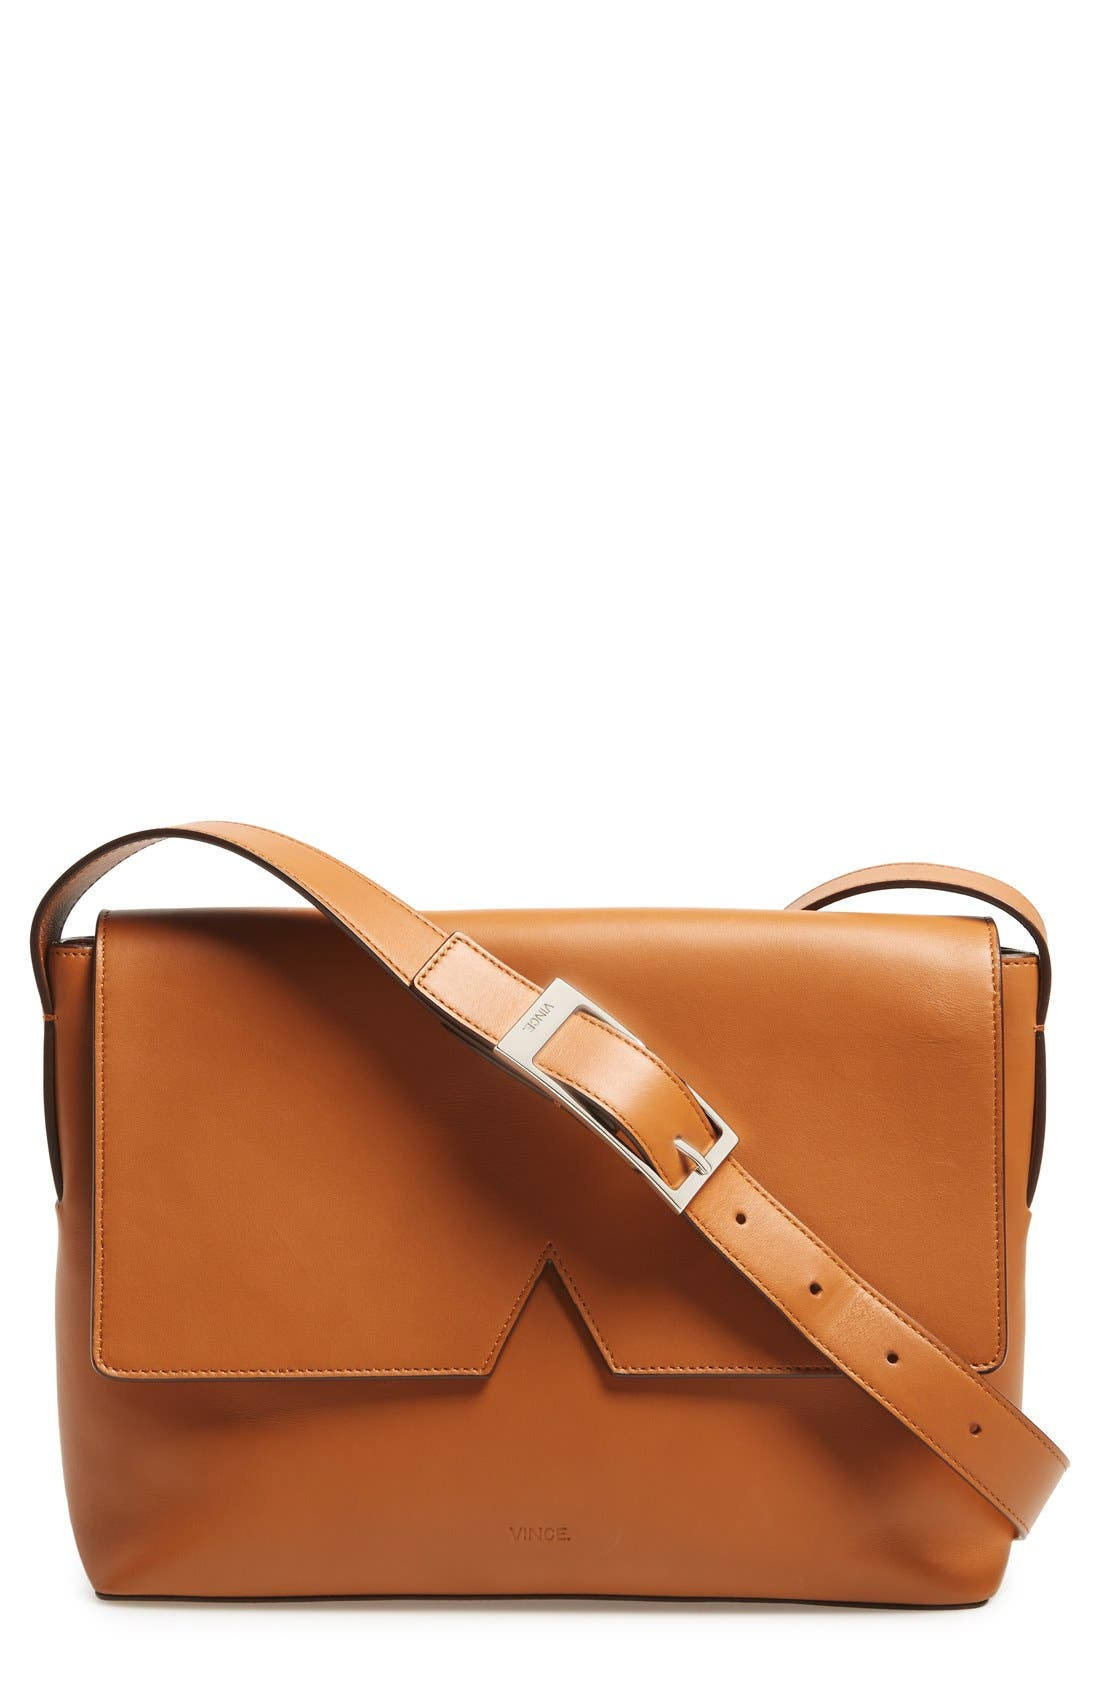 Main Image - Vince 'Signature Collection - Medium' Leather Messenger Bag